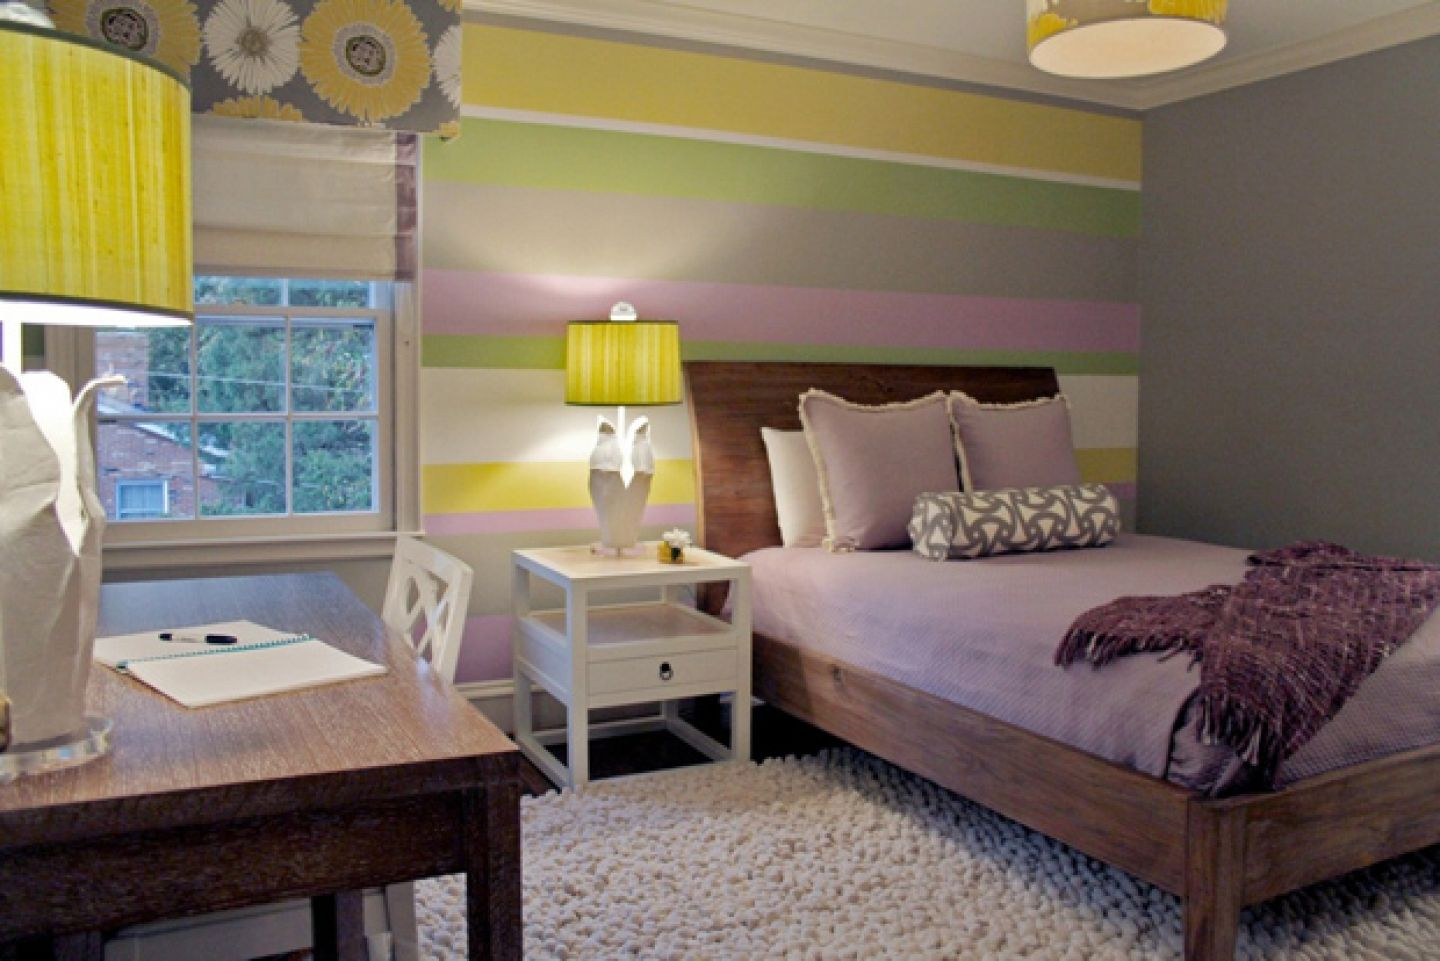 Bedroom colors grey purple - Delightful Smart Teen Bedroom Idea Gray Grey Purple Green Yellow Listed In